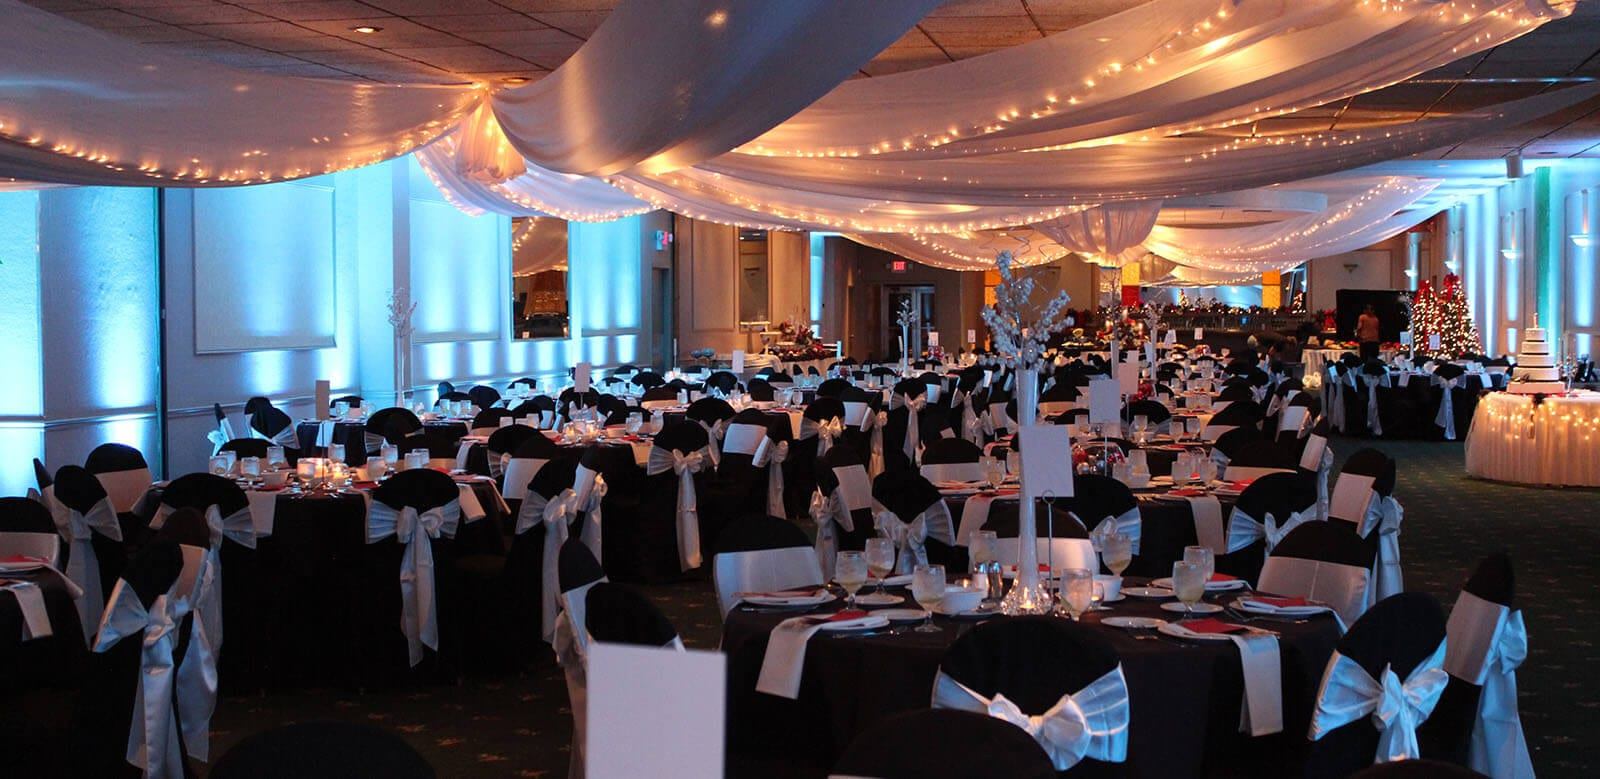 Banquet room beautifully prepared for wedding around Christmas